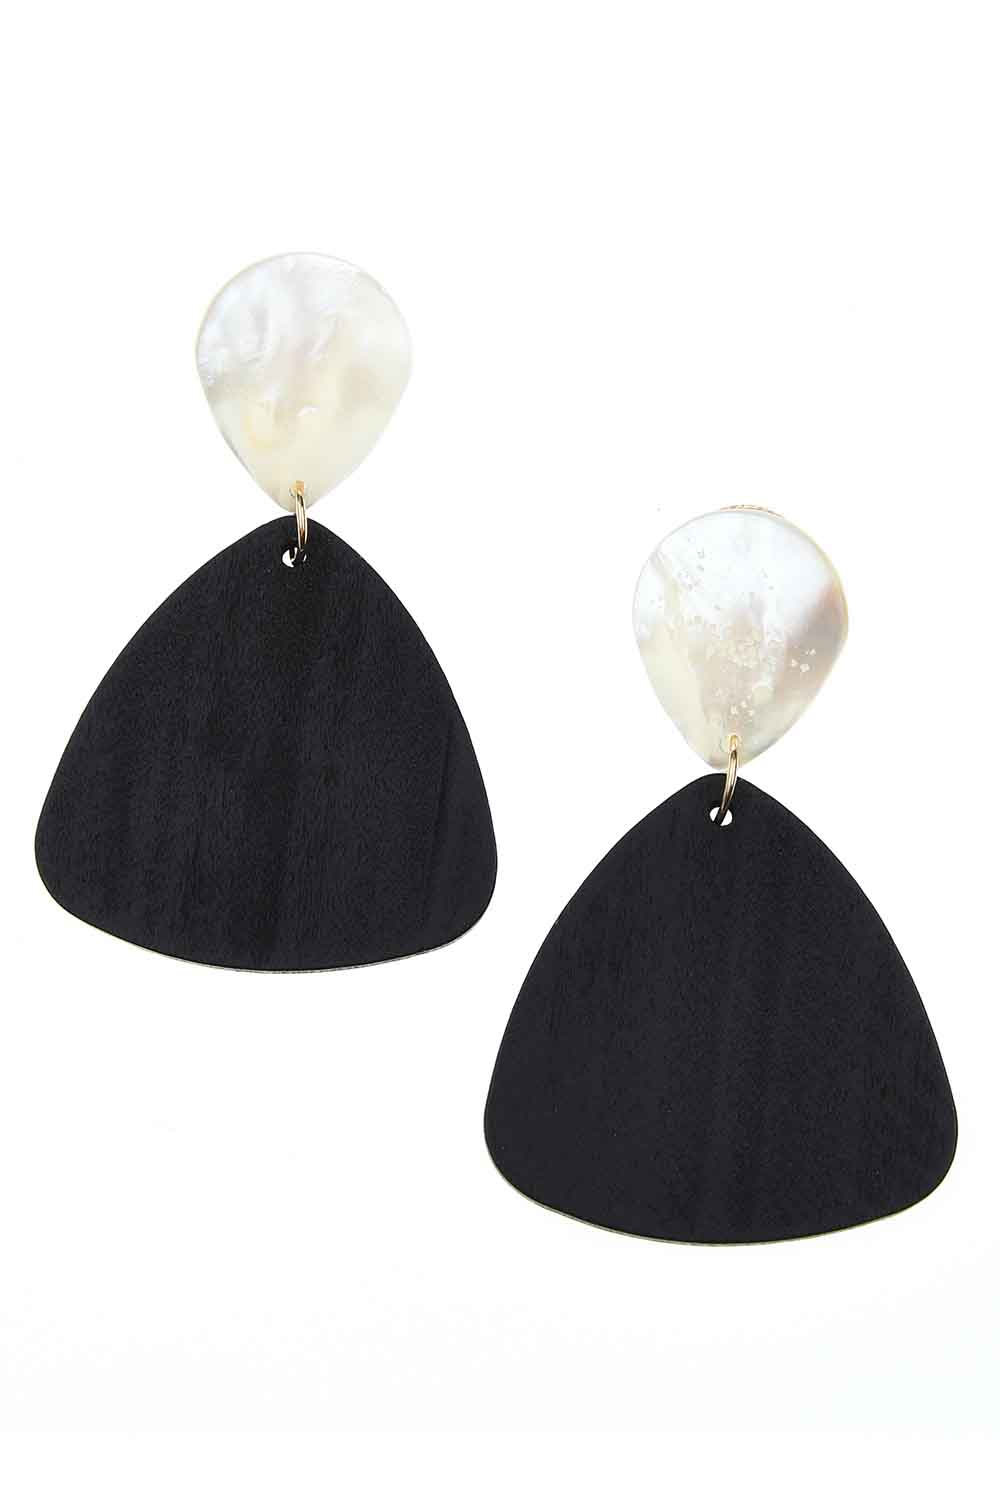 MIZALLE Pearlescent Dangling Earrings (St) (1)